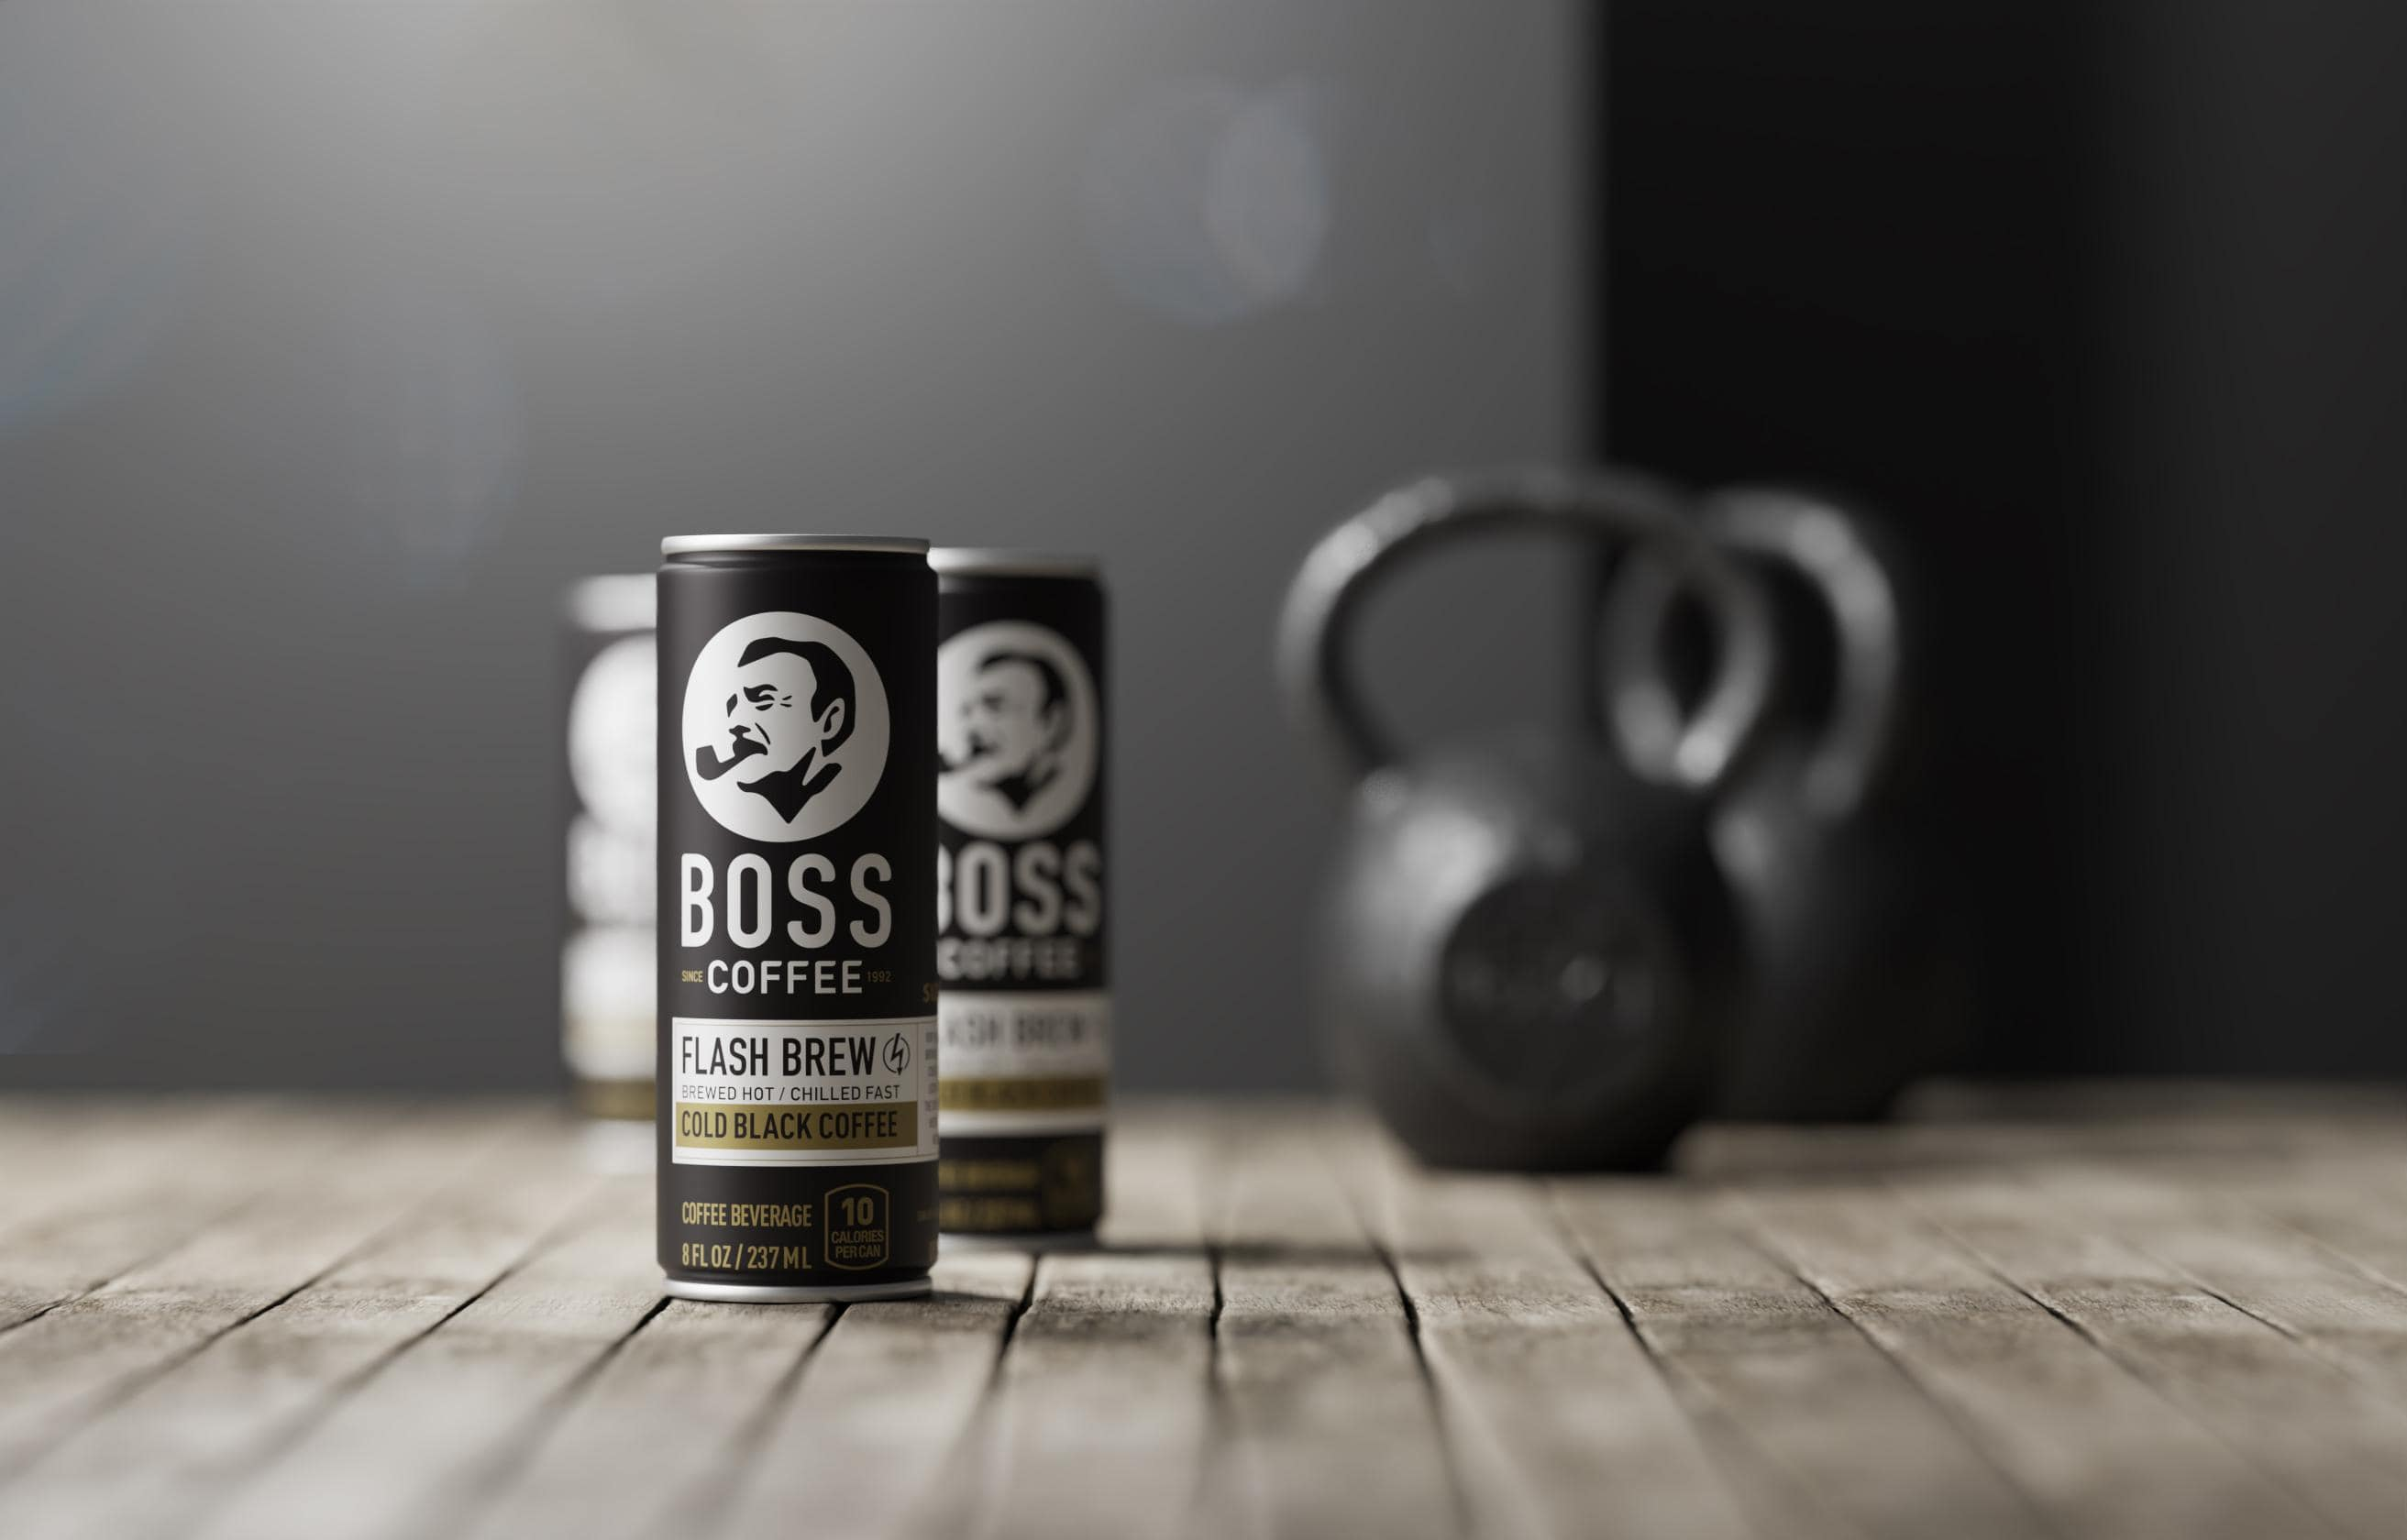 CGI coffee product photography - Gym concept